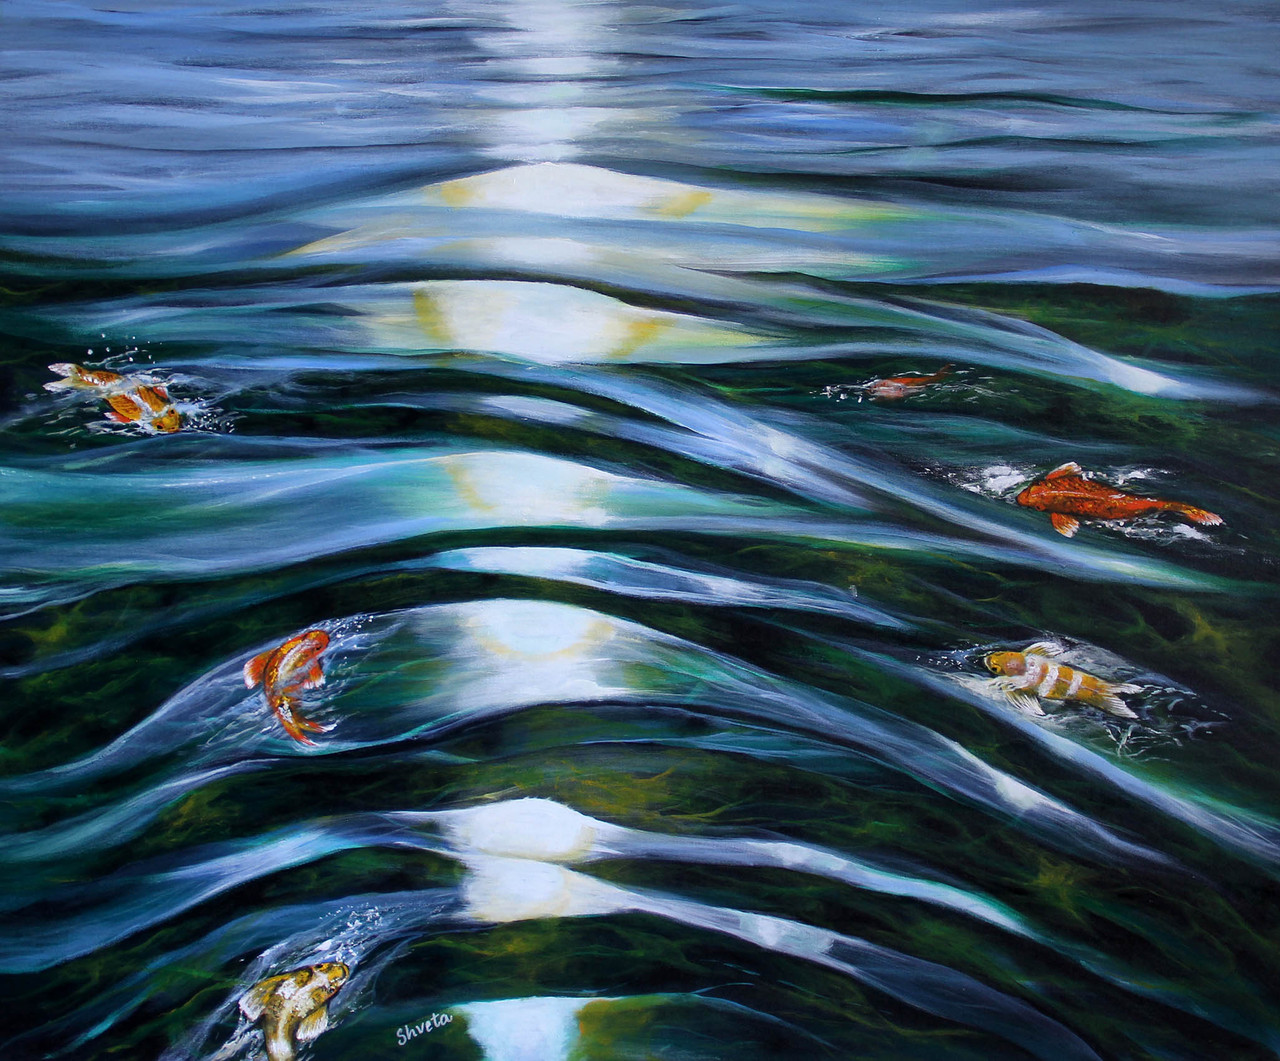 Koi Fish in a Pond (ART_6584_38113) - Handpainted Art Painting - 36in X 30in